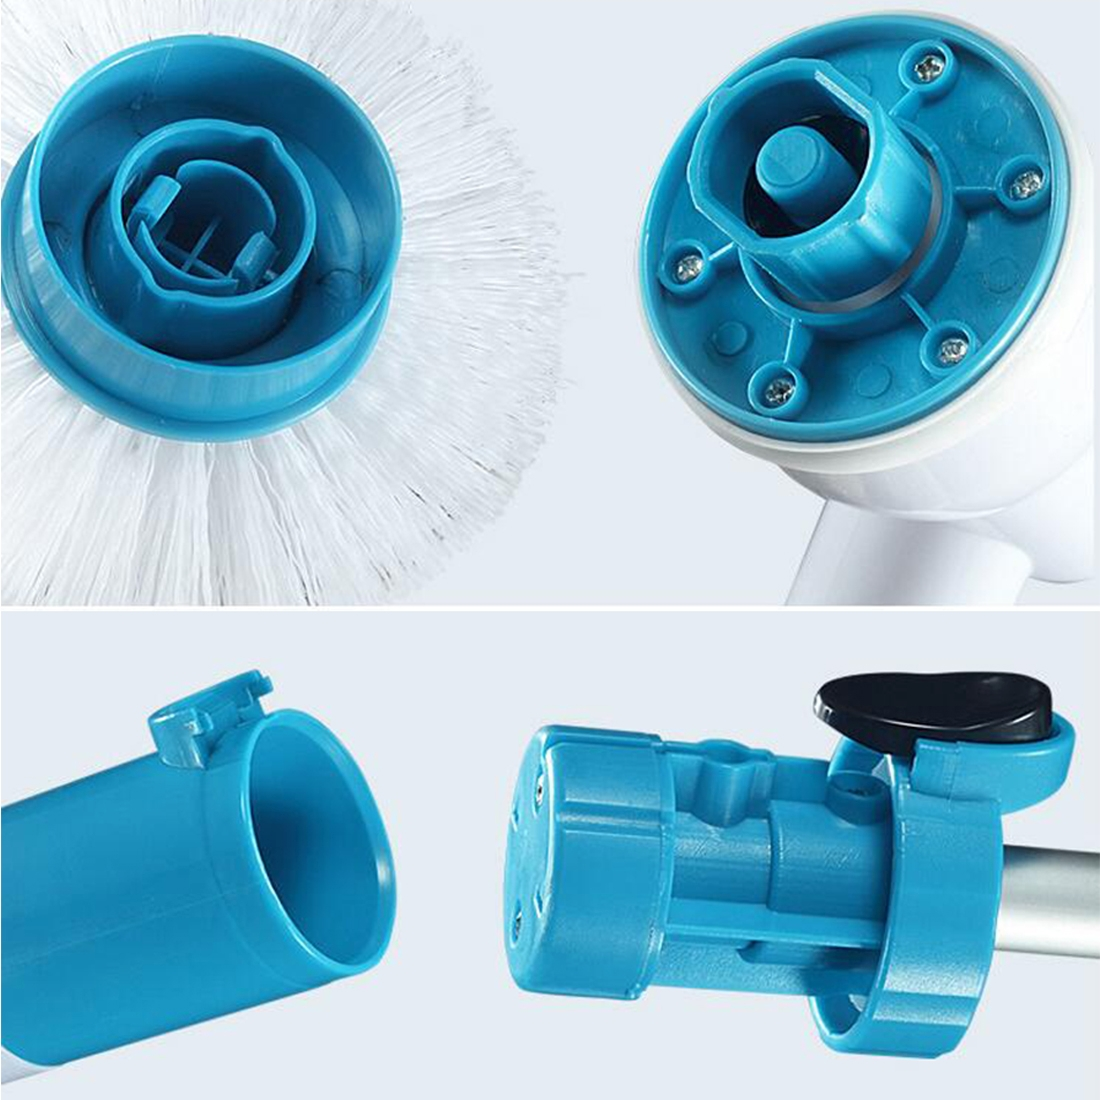 Multi-function Tub and Tile Scrubber Cordless Power Spin Scrubber Power Cleaning Brush Set for Bathroom Floor Wall, EU Plug